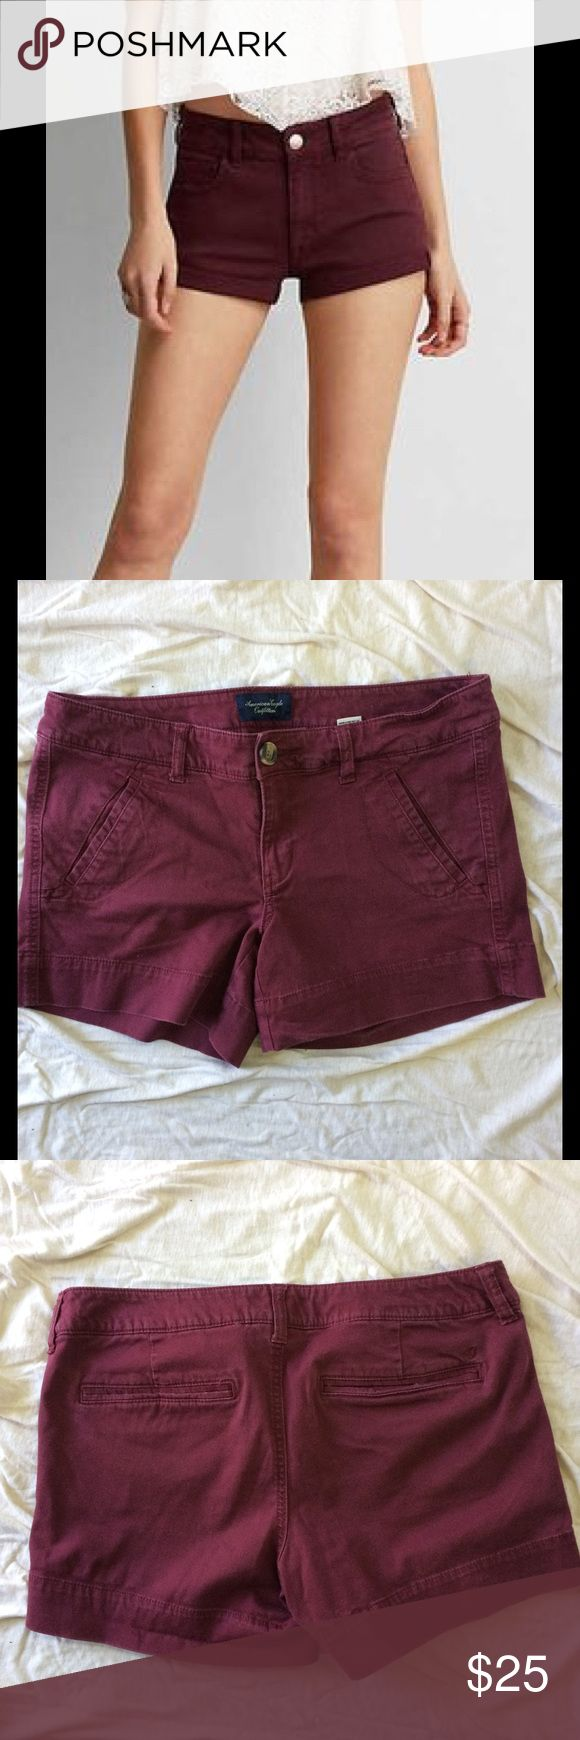 American Eagle burgundy shorts In perfect condition. They are a size 8. Let me know if you have any questions. Model is for cover shot only. I am a fast shipper! Offers welcomed :) a American Eagle Outfitters Shorts Jean Shorts